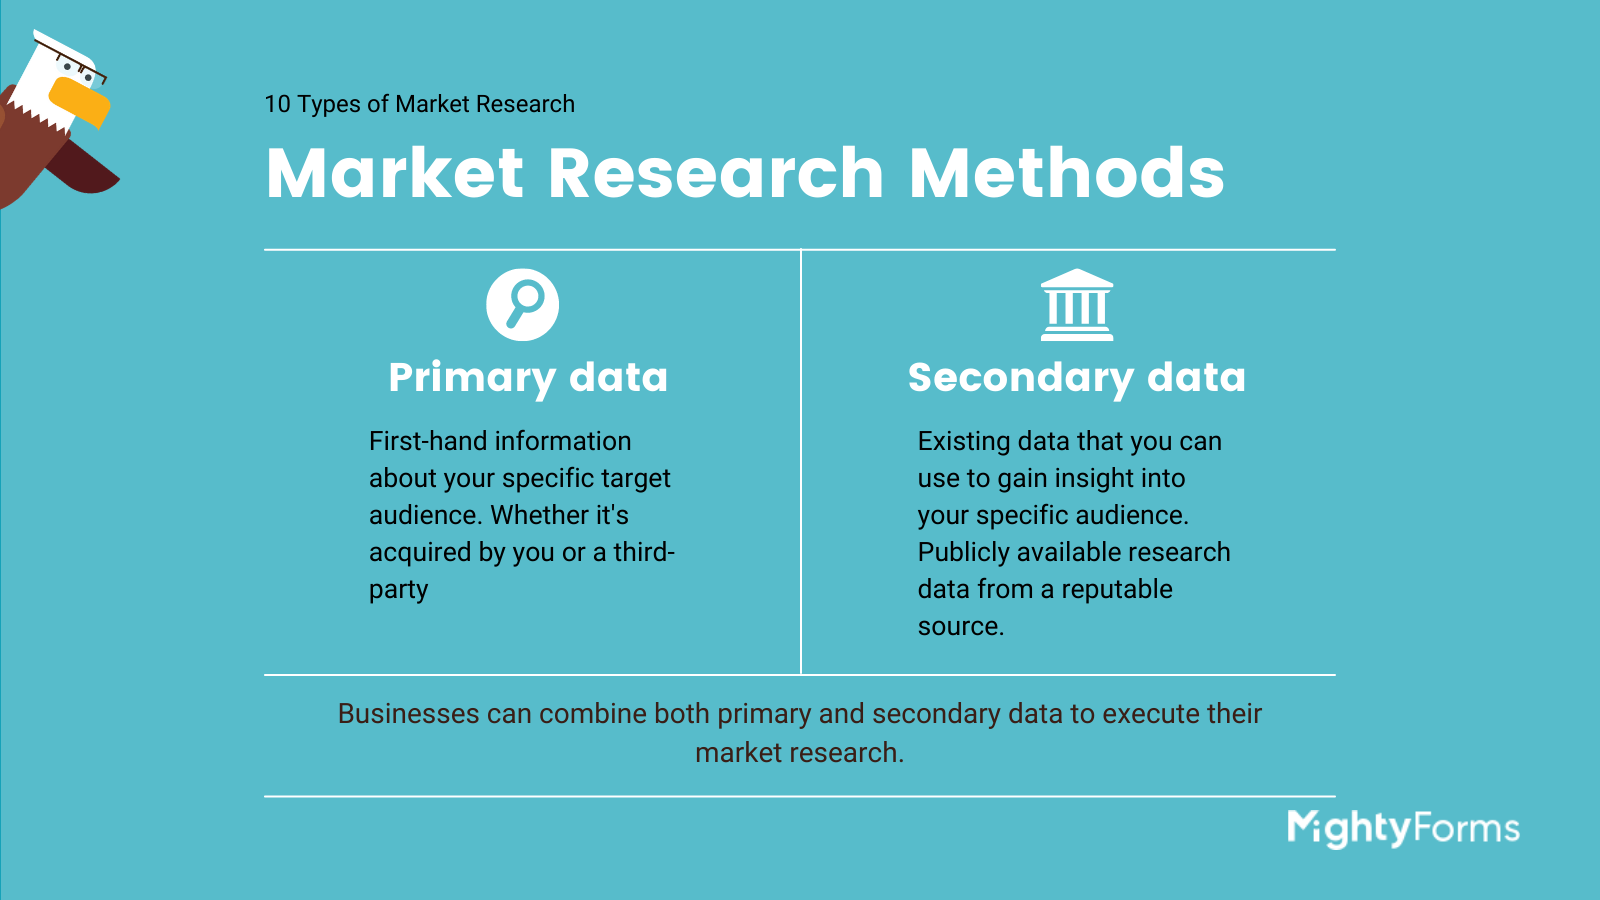 market research methods infographic_ primary vs secondary data _MightyForms